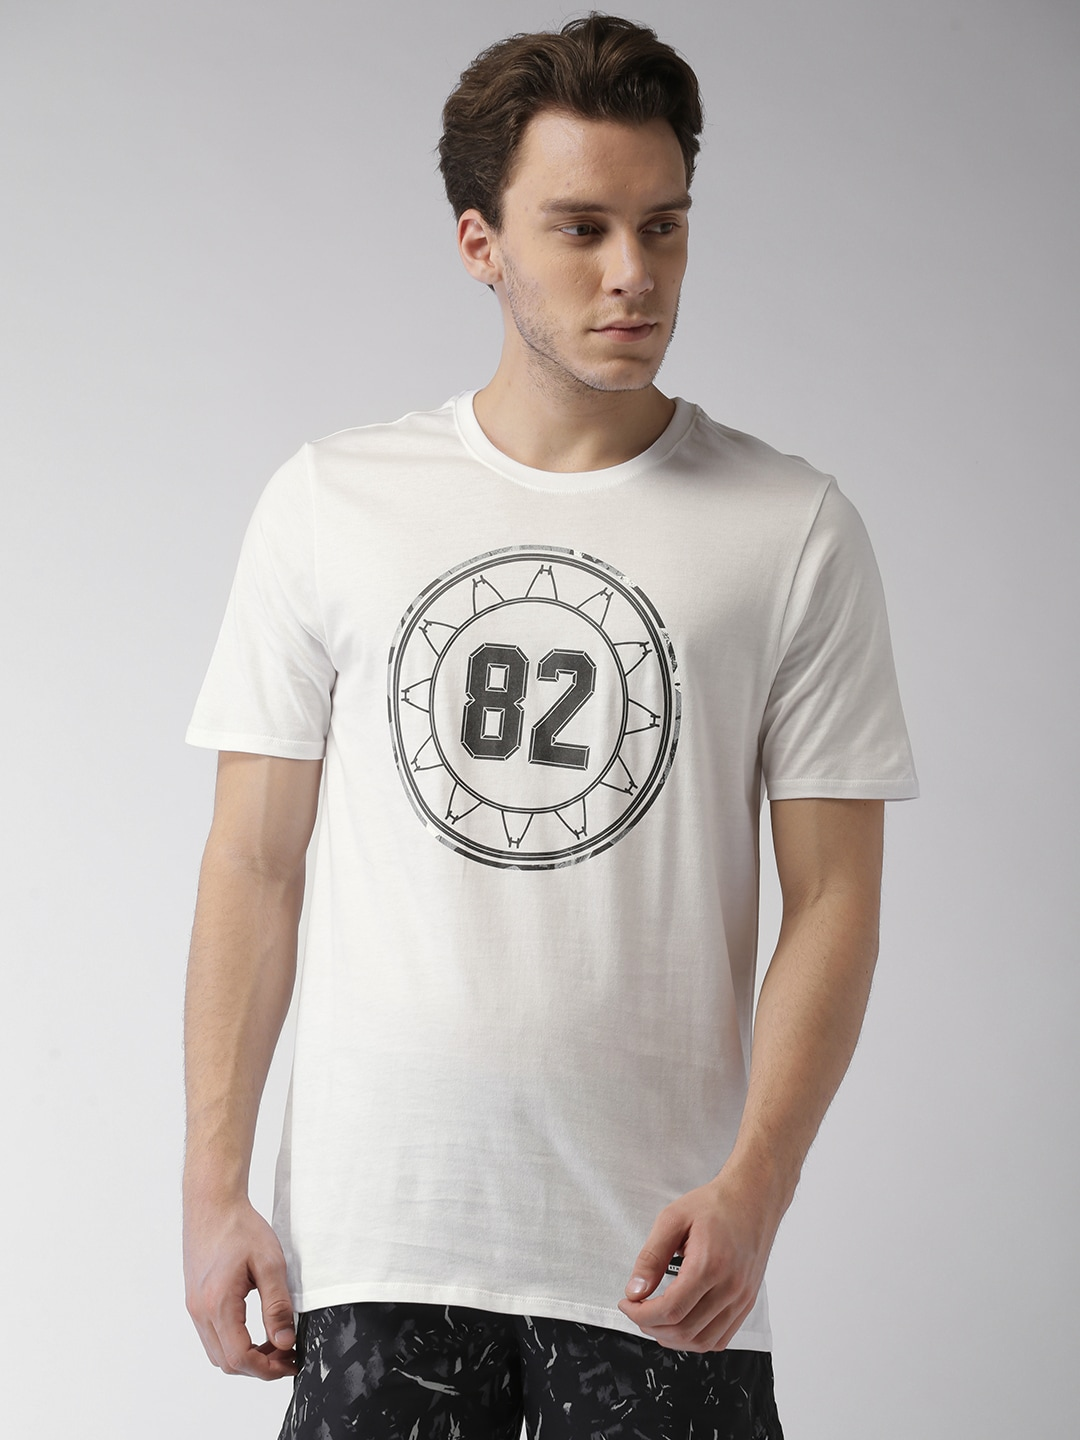 722cadd49373 Nike Casual Shoes Men Tshirts - Buy Nike Casual Shoes Men Tshirts online in  India